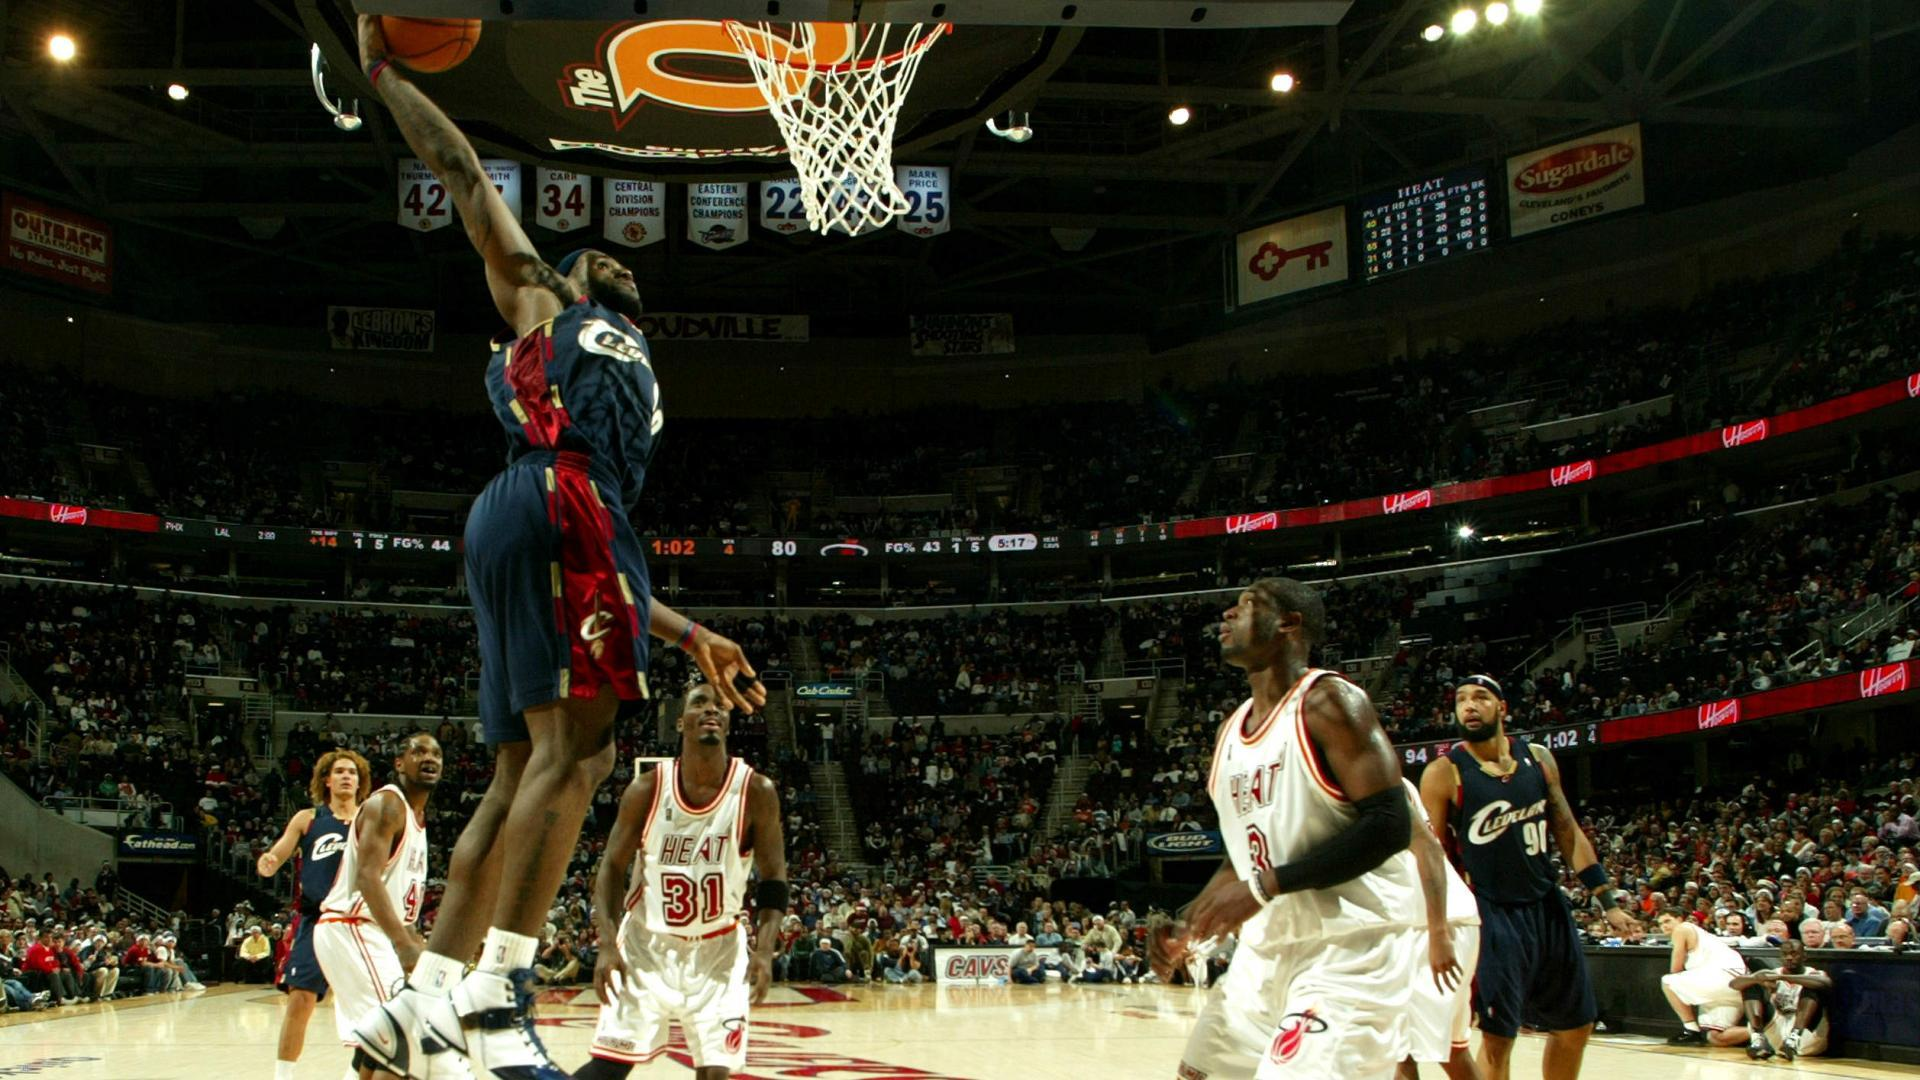 b087a2fa9828 LeBron James elevates for a power jam against the Heat on Dec. 25